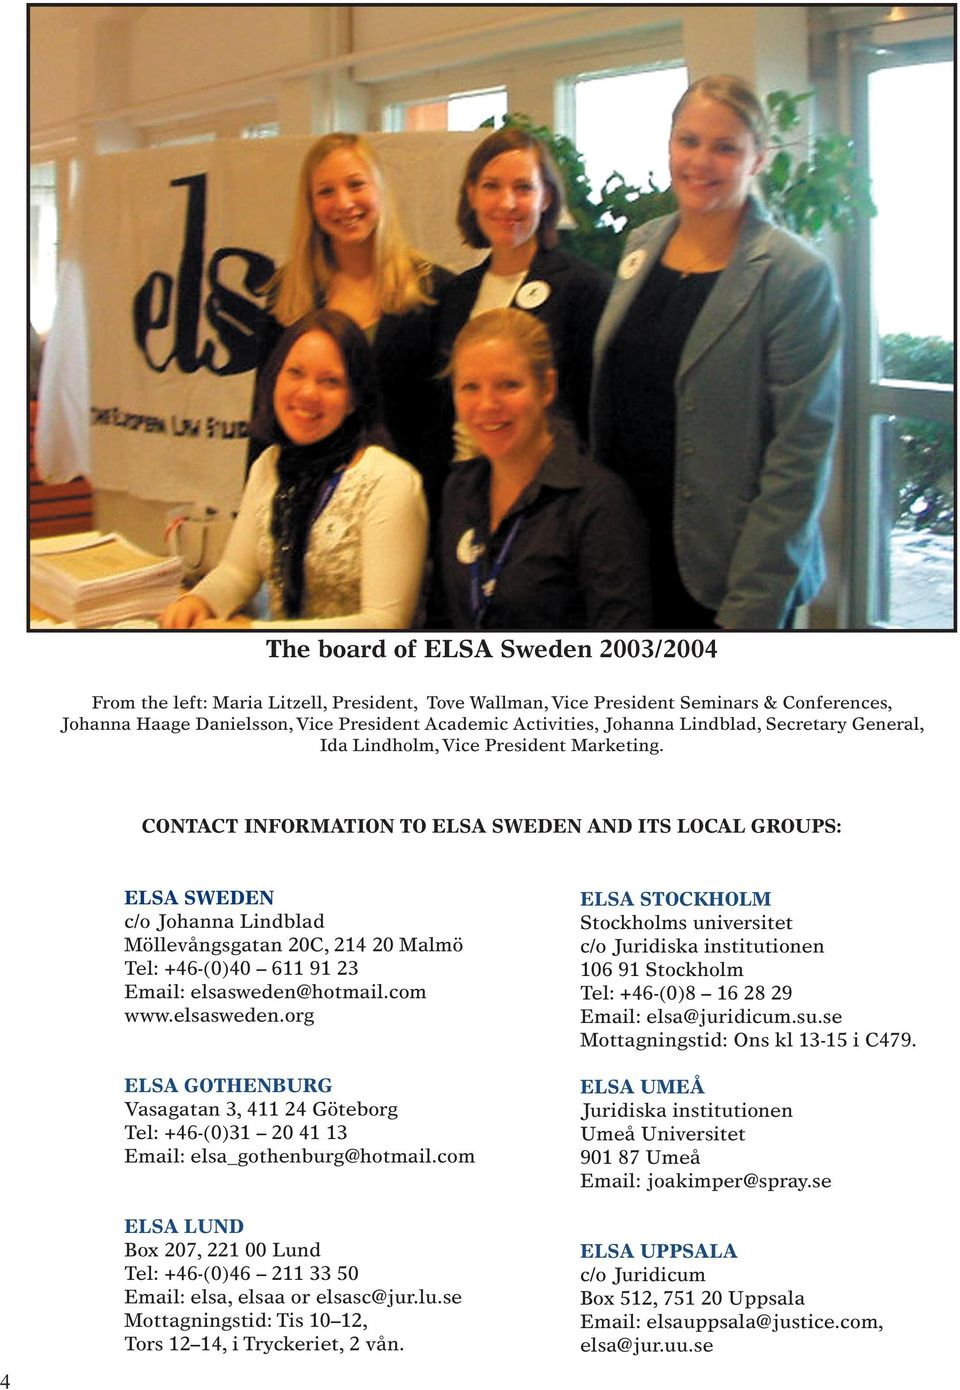 CONTACT INFORMATION TO ELSA SWEDEN AND ITS LOCAL GROUPS: ELSA SWEDEN c/o Johanna Lindblad Möllevångsgatan 20C, 214 20 Malmö Tel: +46-(0)40 611 91 23 Email: elsasweden@